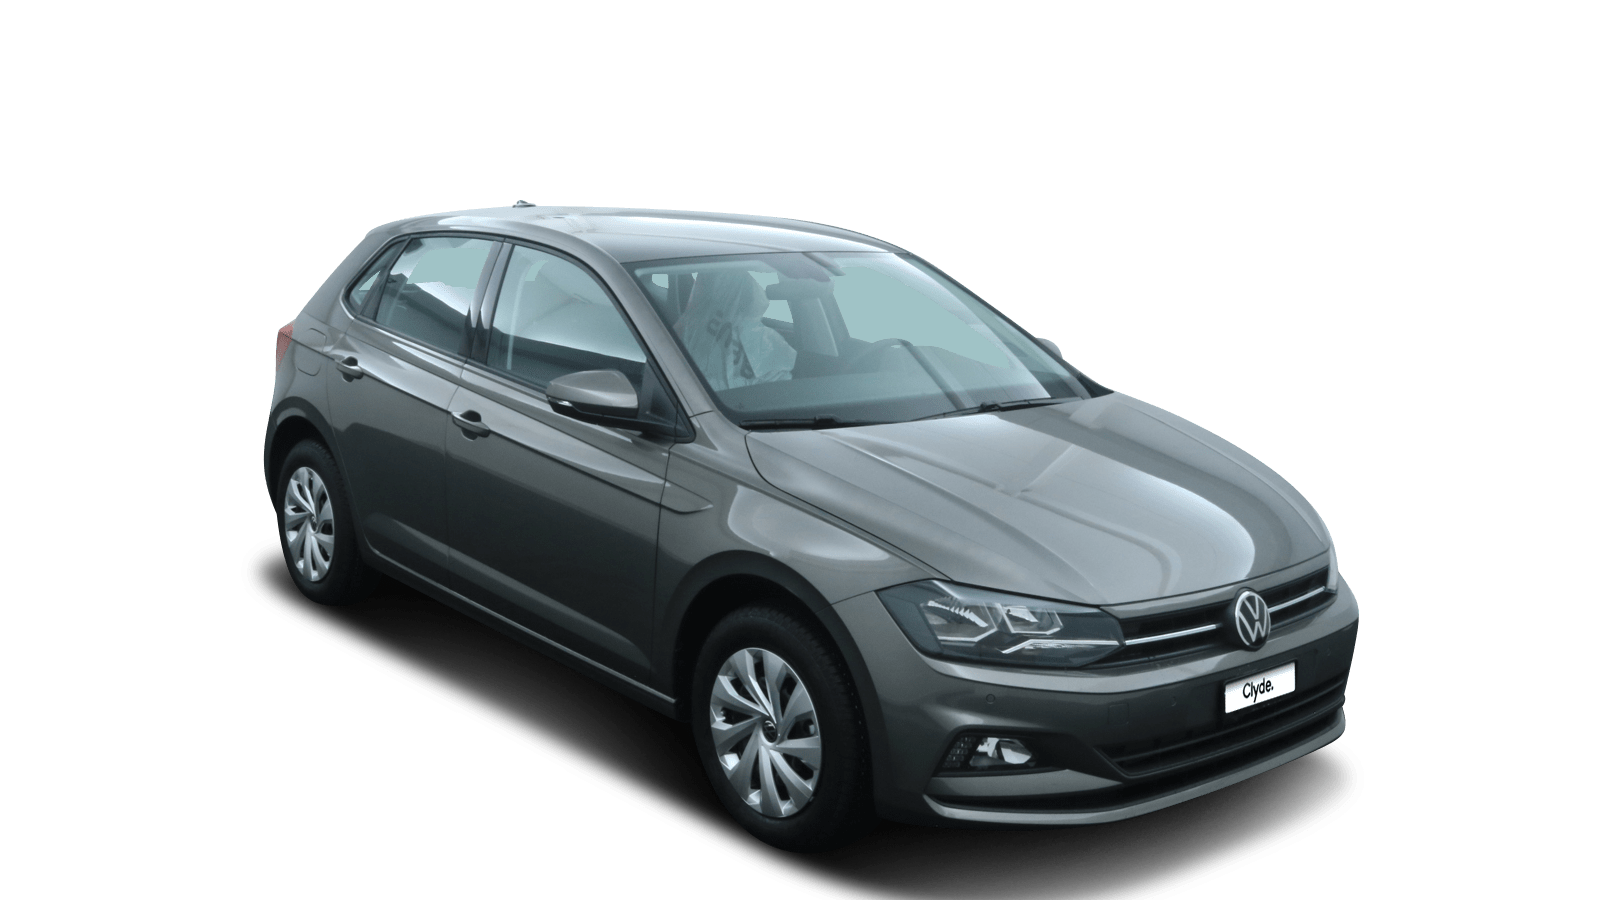 VW Polo Grey front - Clyde car subscription